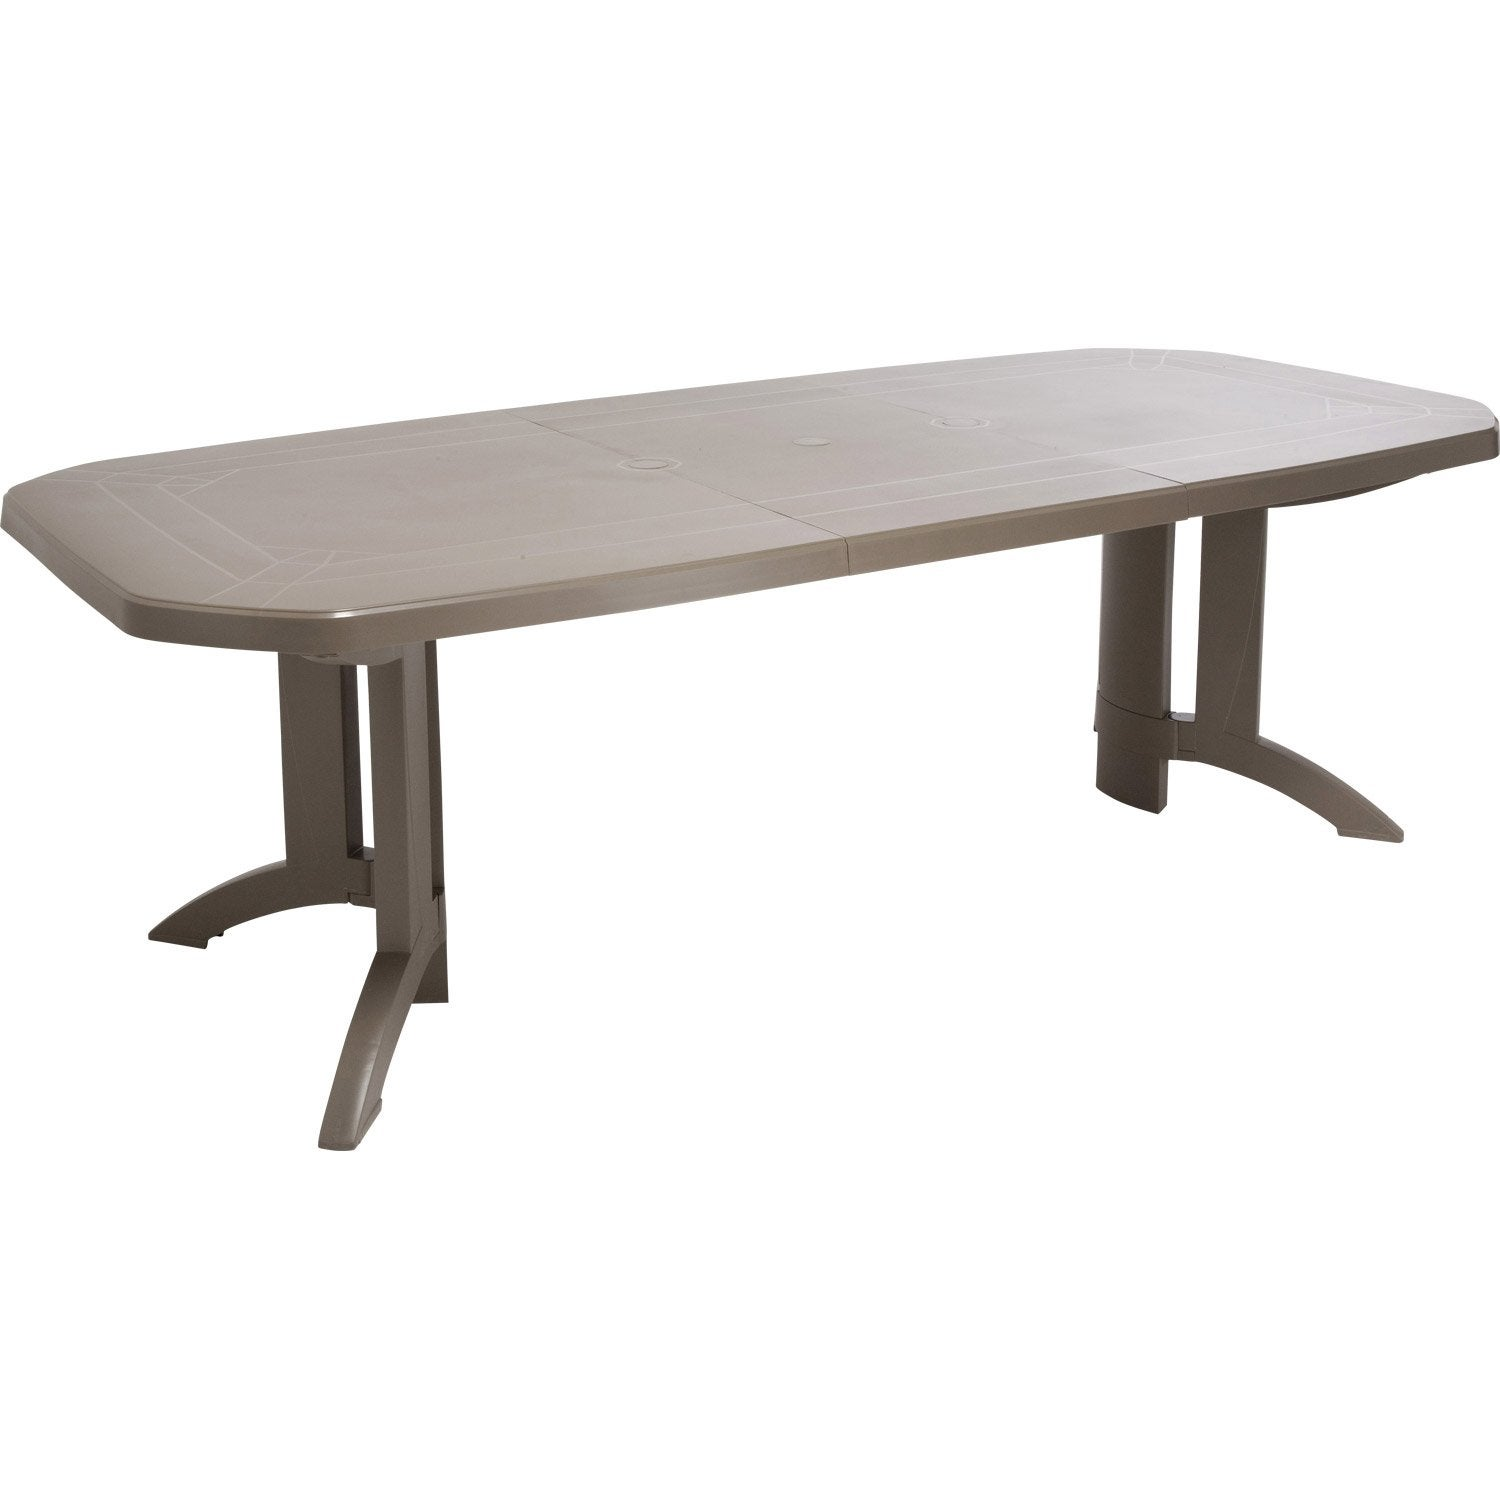 Table de jardin grosfillex v ga rectangulaire taupe 10 - Leroy merlin table pliante ...